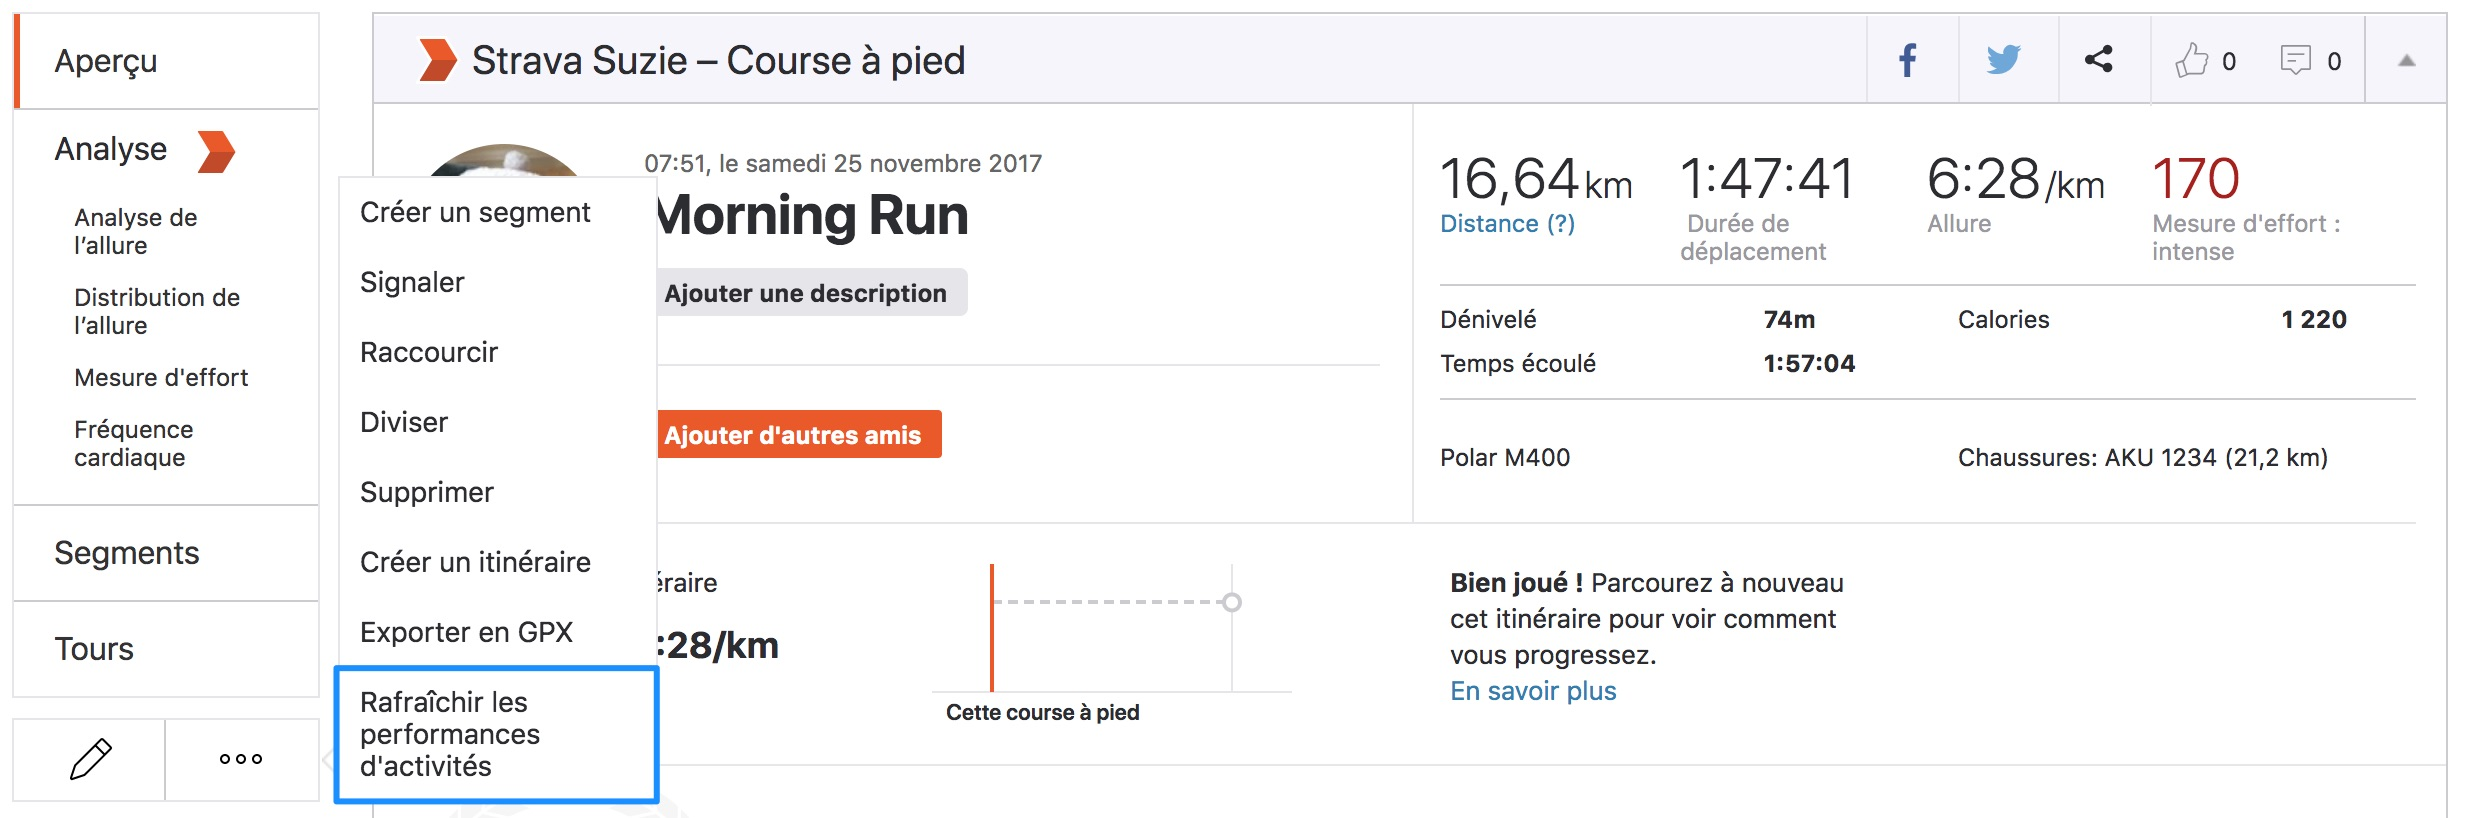 Morning_Run___Course_a__pied___Strava.jpg